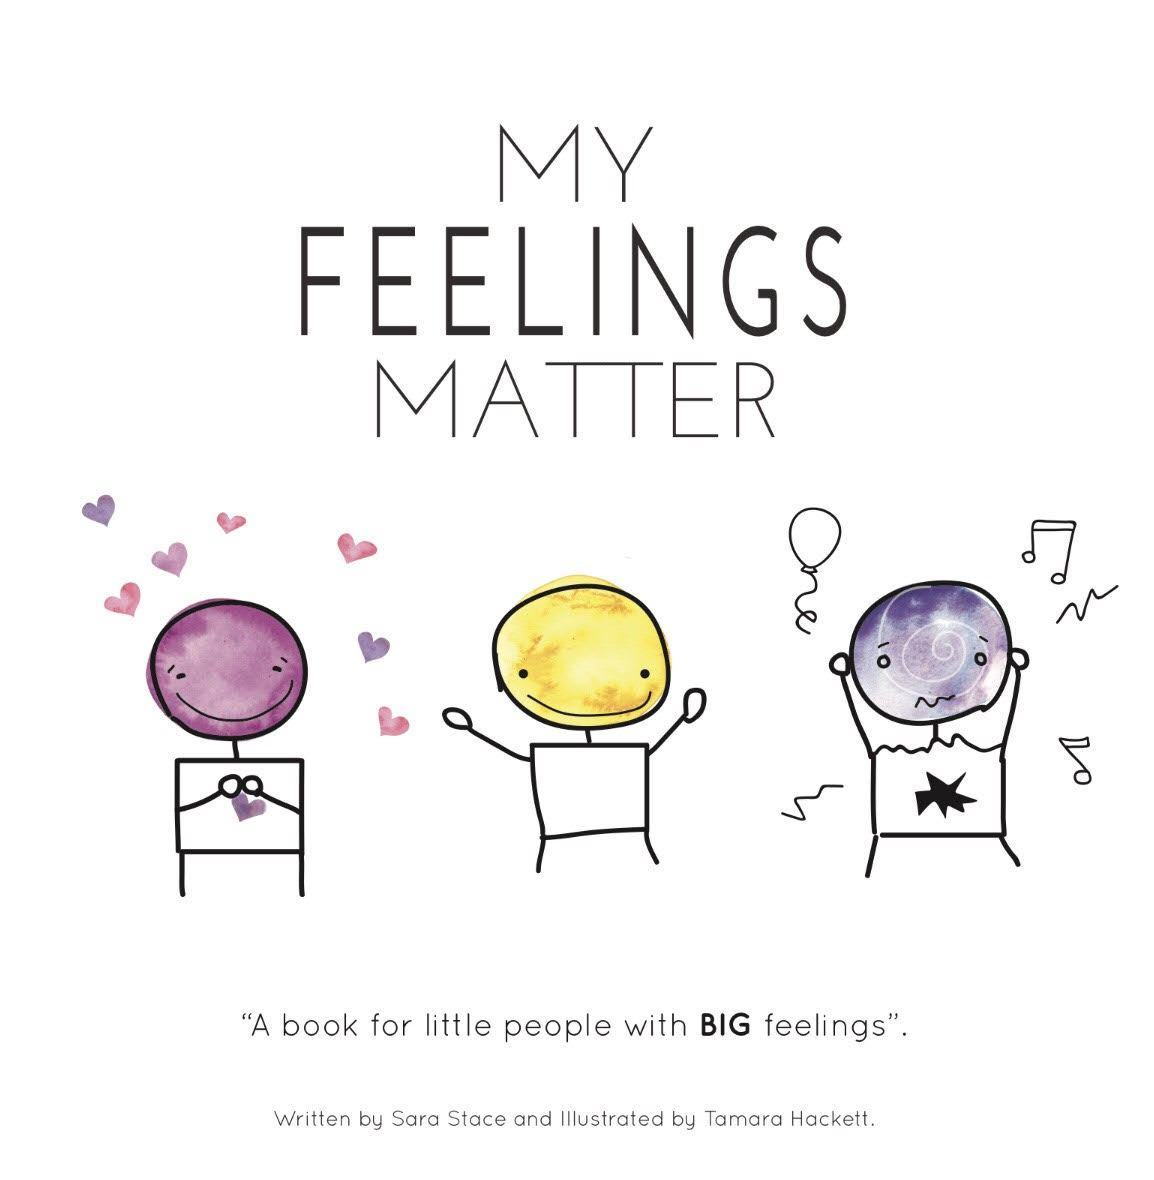 My Feelings Matter Book by Sara Stace